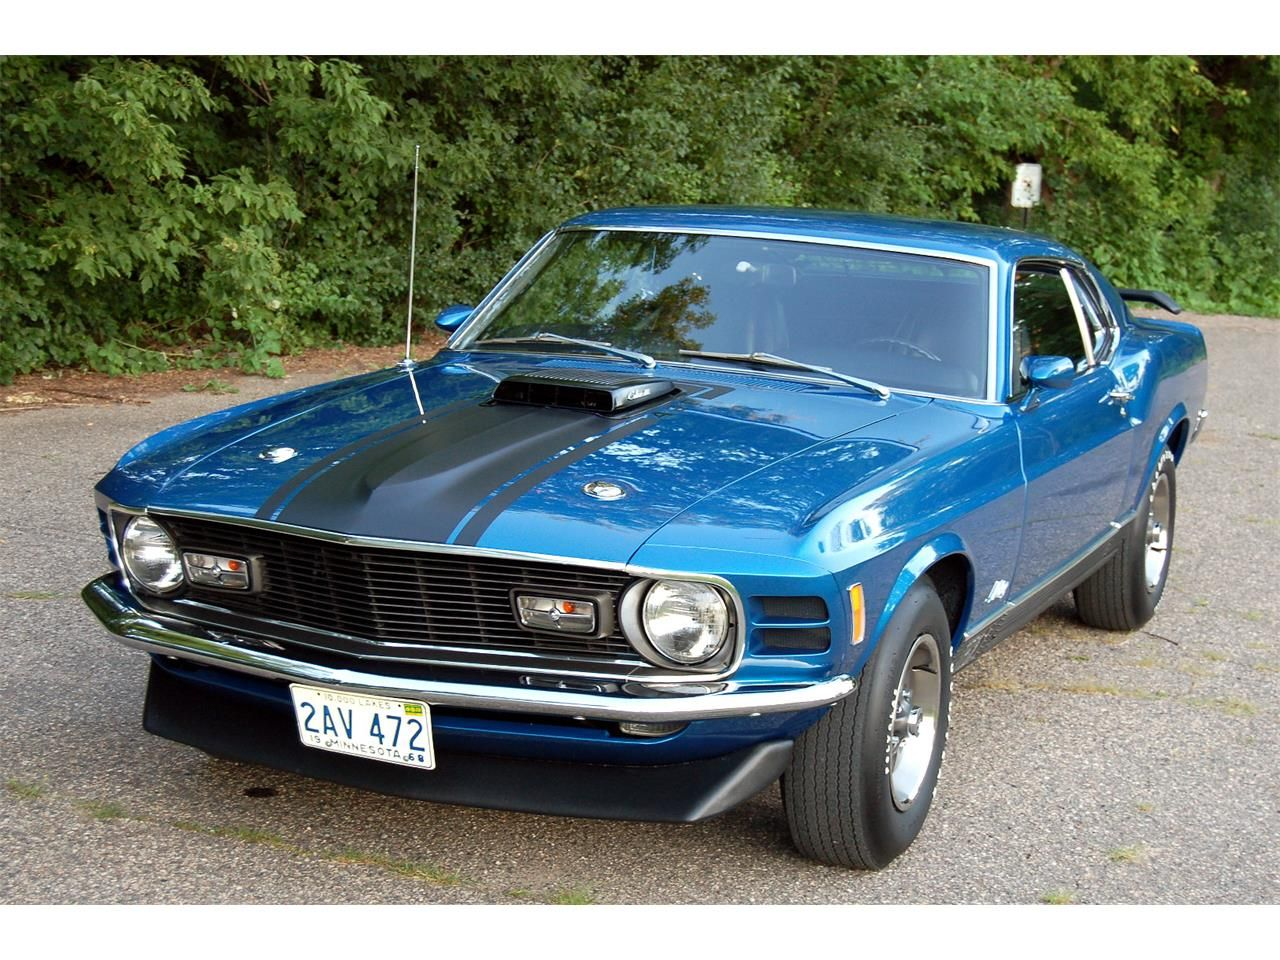 1970 Ford Mustang Mach 1 | ClassicCars.com | Sport cars | Pinterest ...